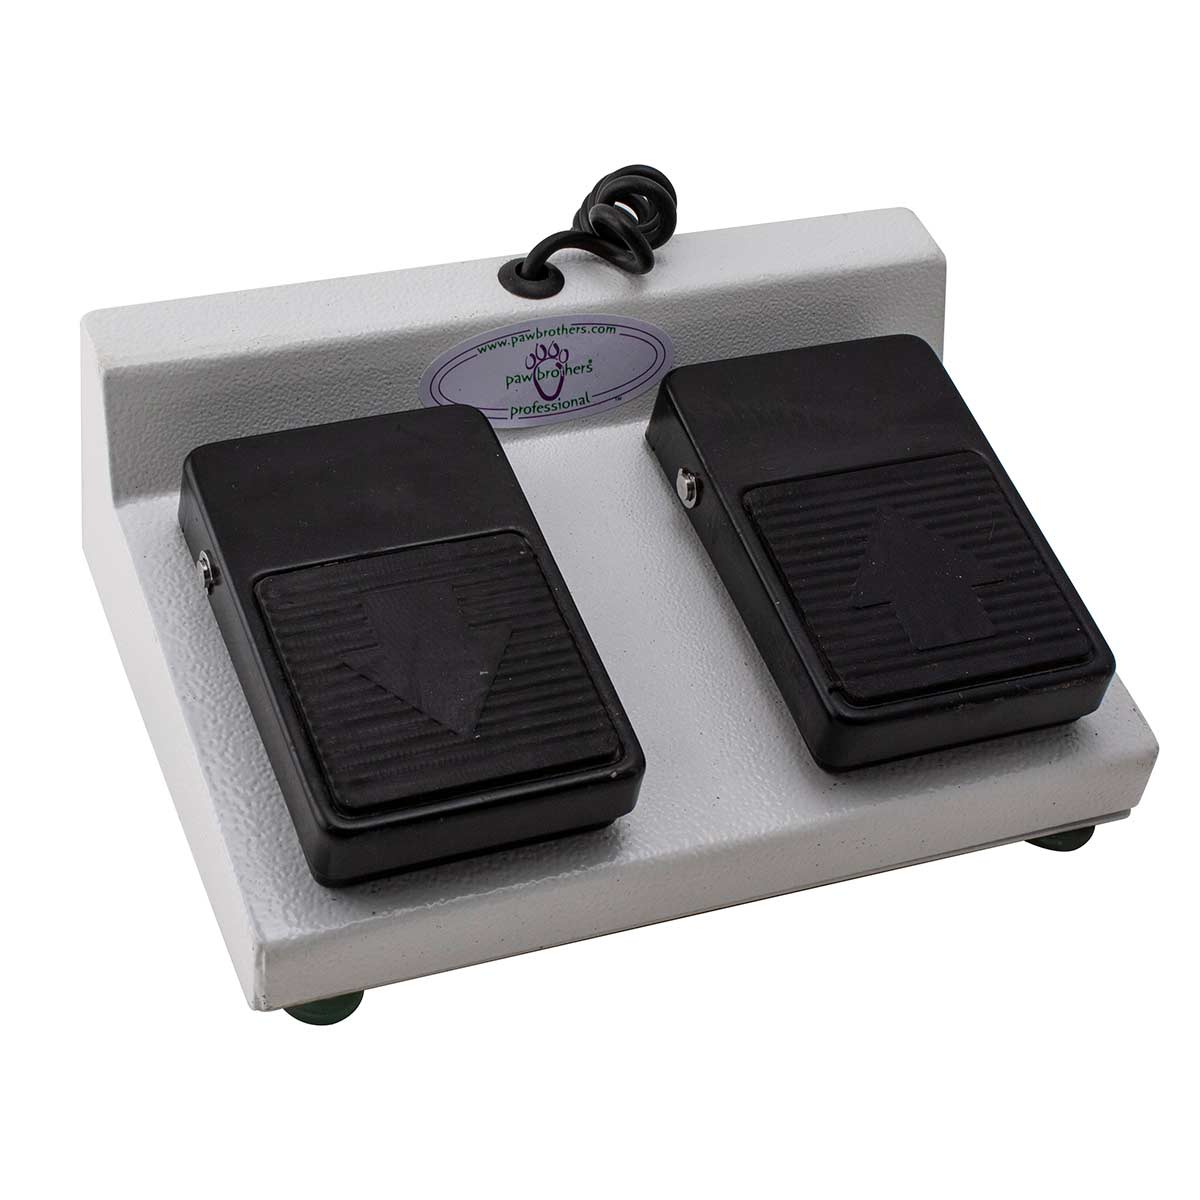 Replacement Foot Pedal for PBP89360 - Dog Grooming Equipment Parts at Ryan's Pet Supplies